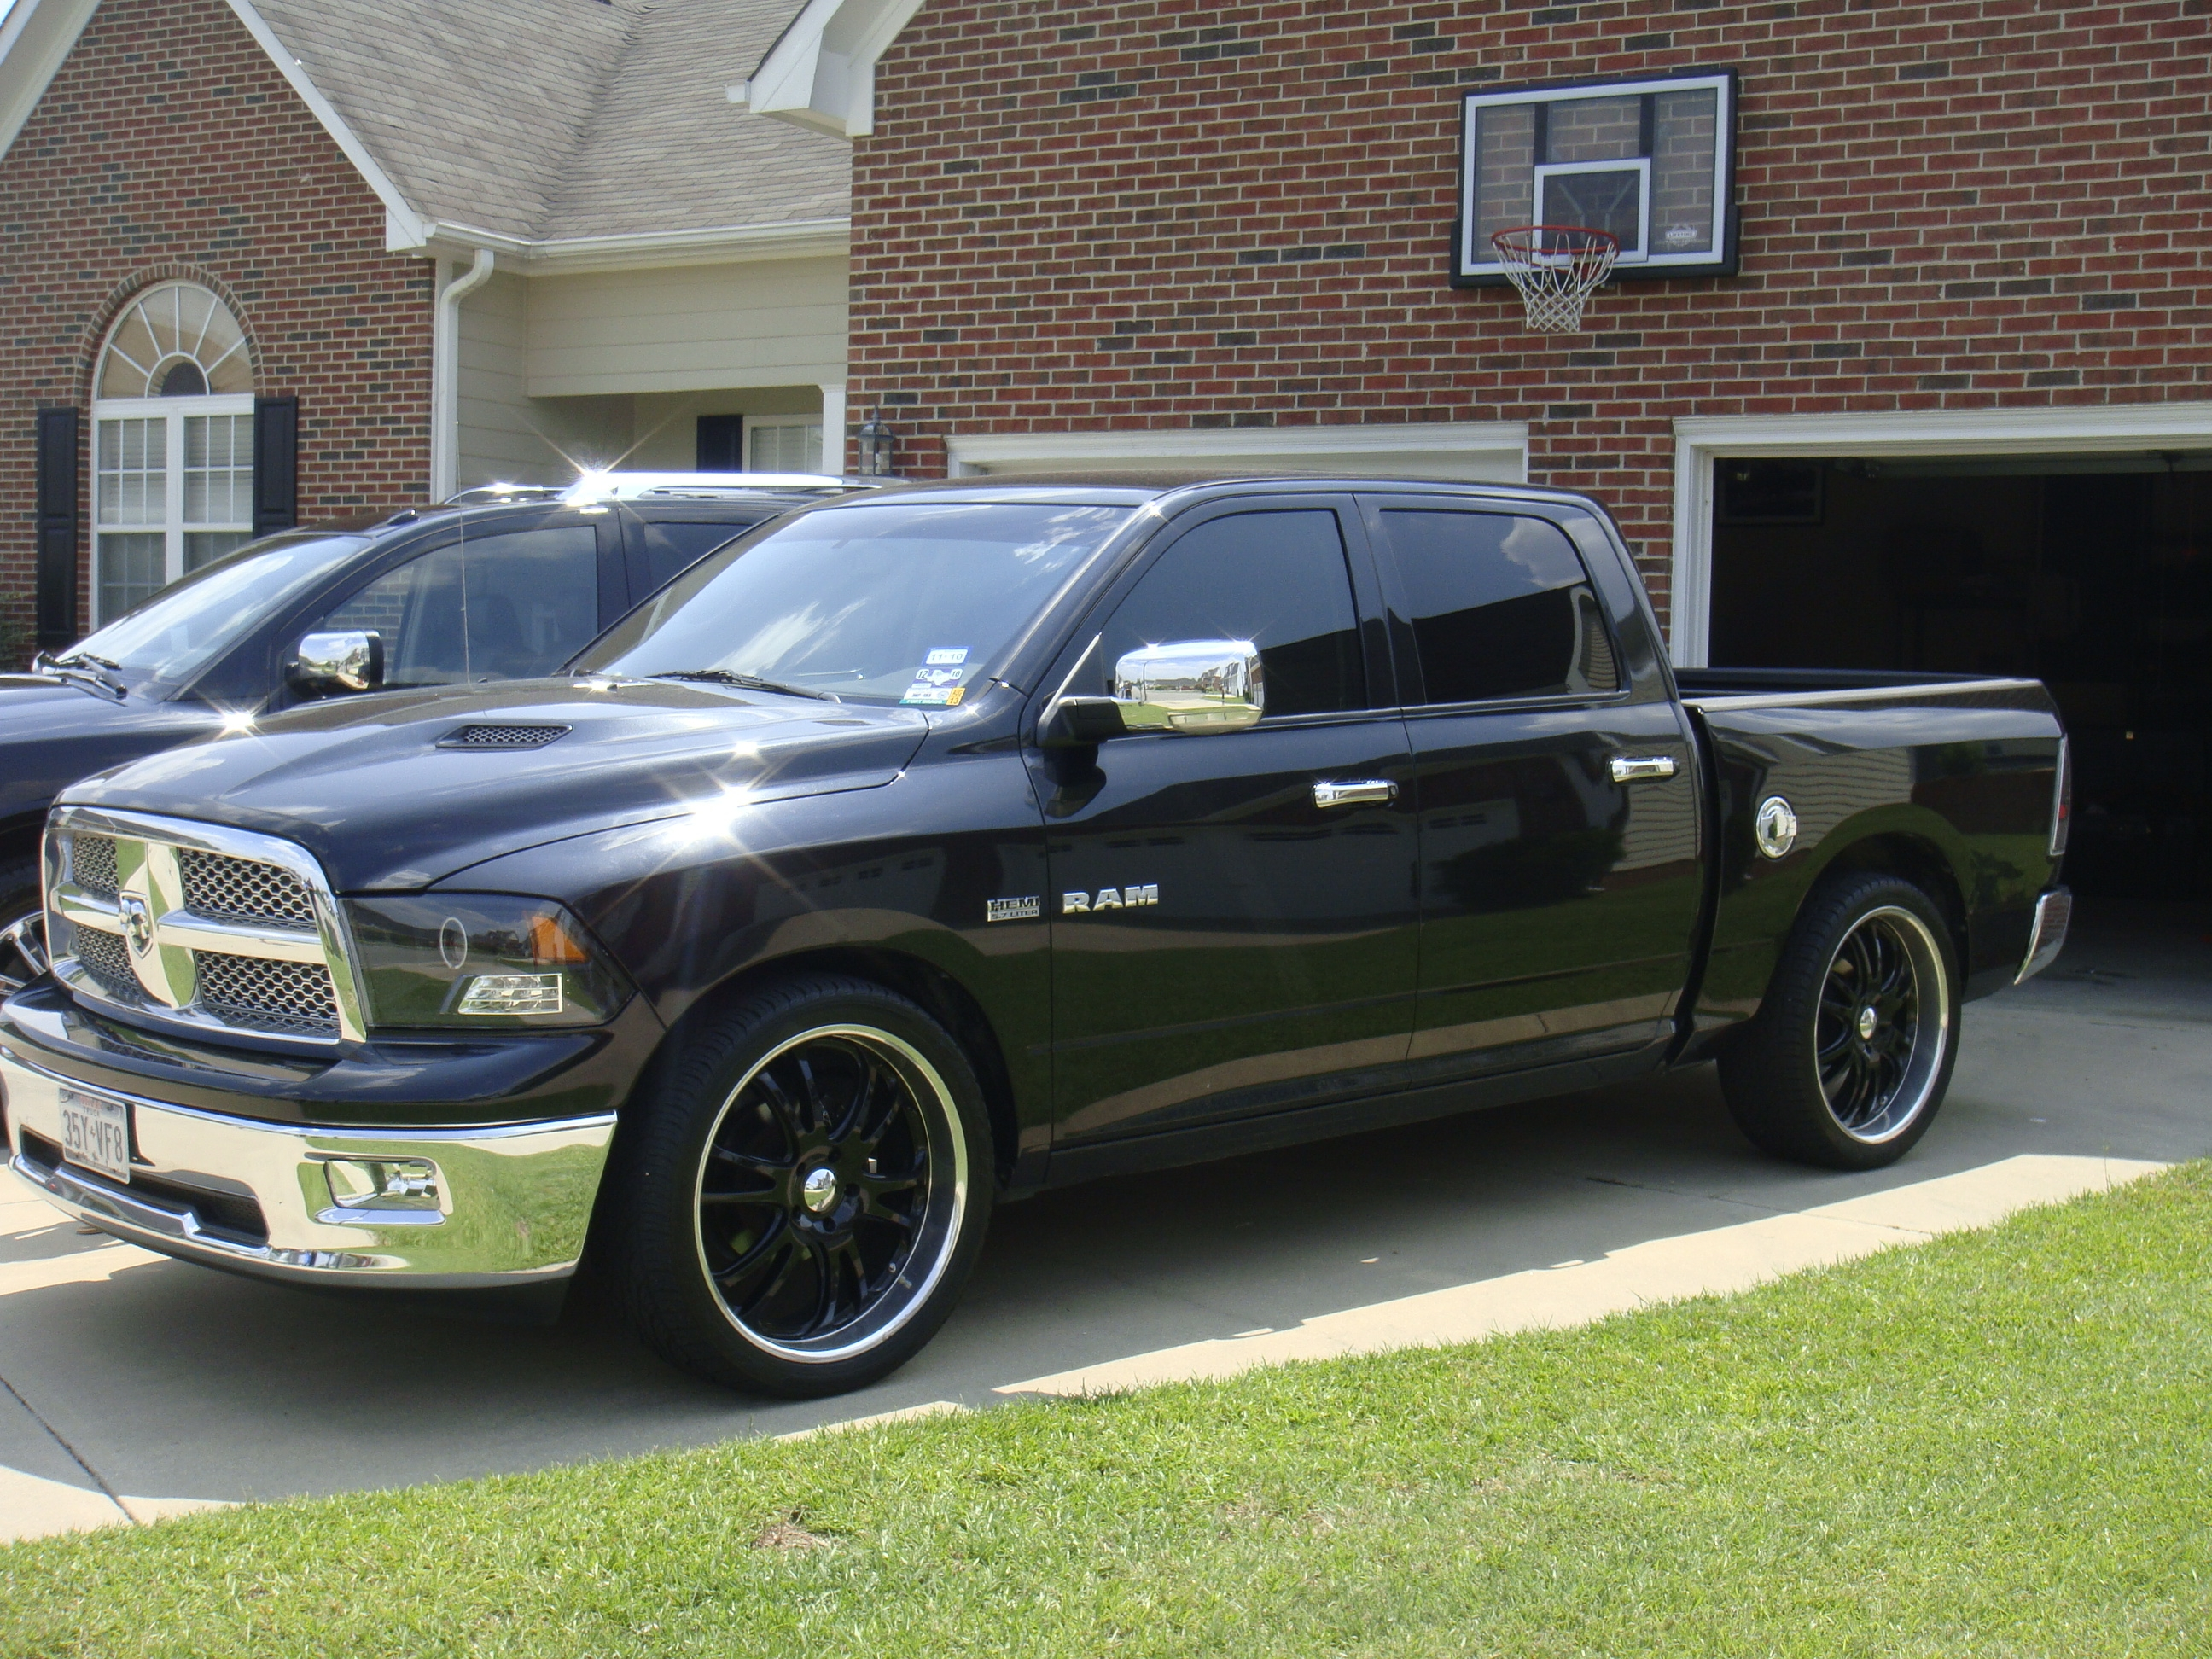 possumhatter 2009 dodge ram 1500 crew cab specs photos modification info at cardomain. Black Bedroom Furniture Sets. Home Design Ideas